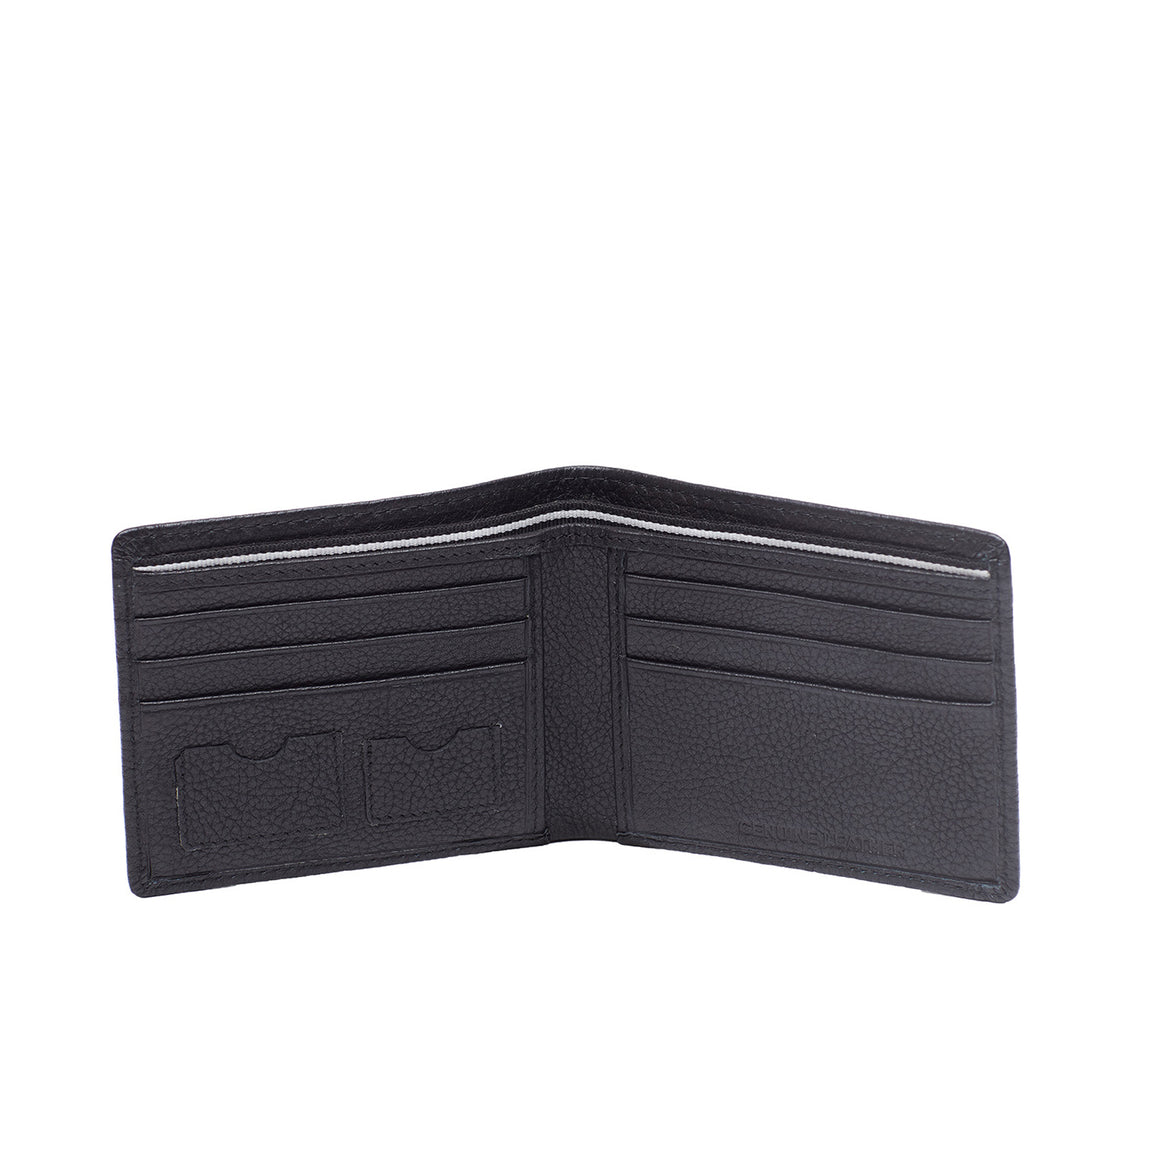 WT 0031 - TOHL BARONA MEN'S WALLET - CHARCOAL BLACK